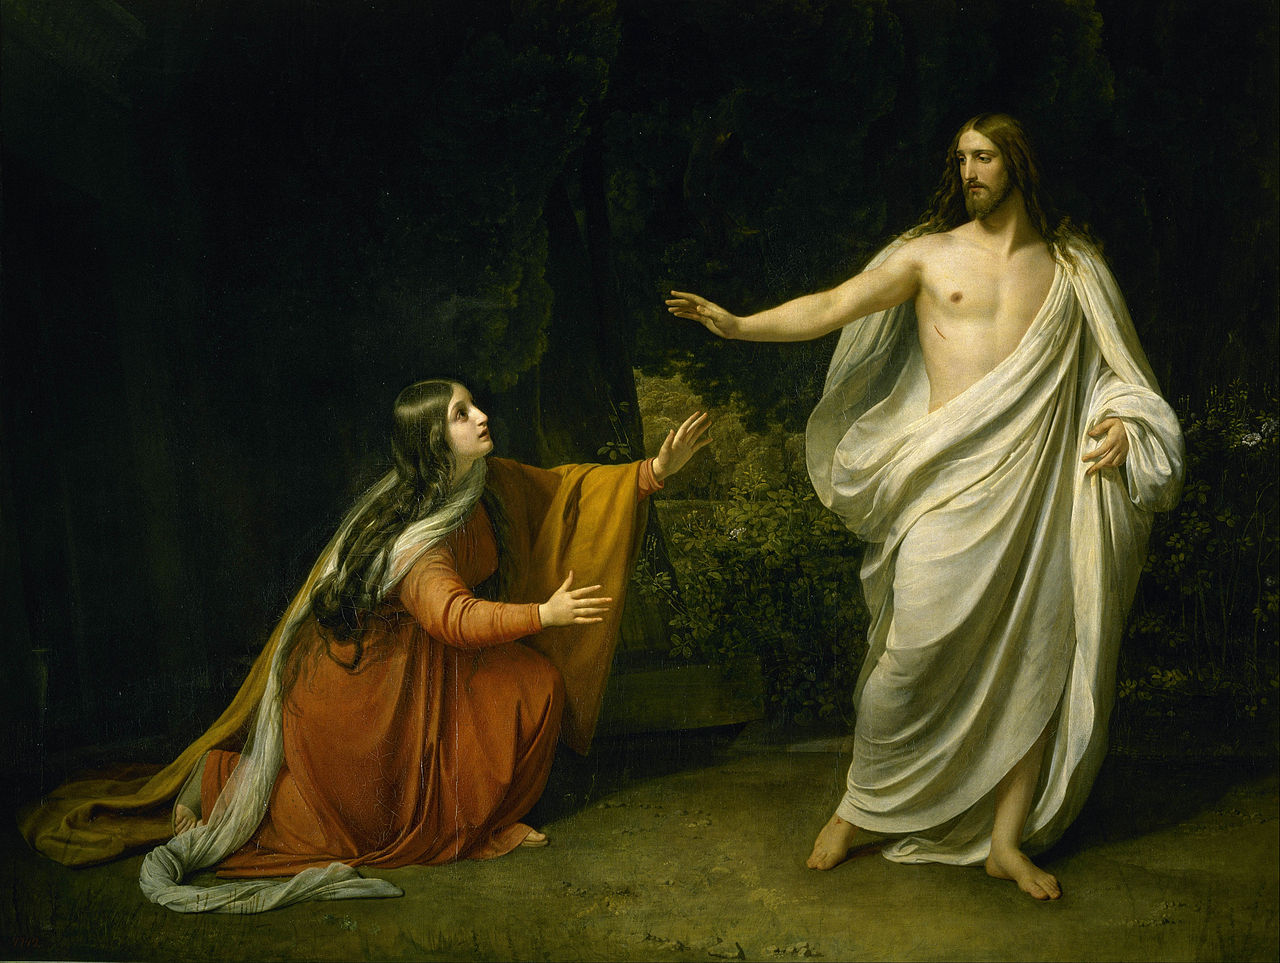 Saint Mary Magdalene: Pray for us! | Image: Wikimedia Commons